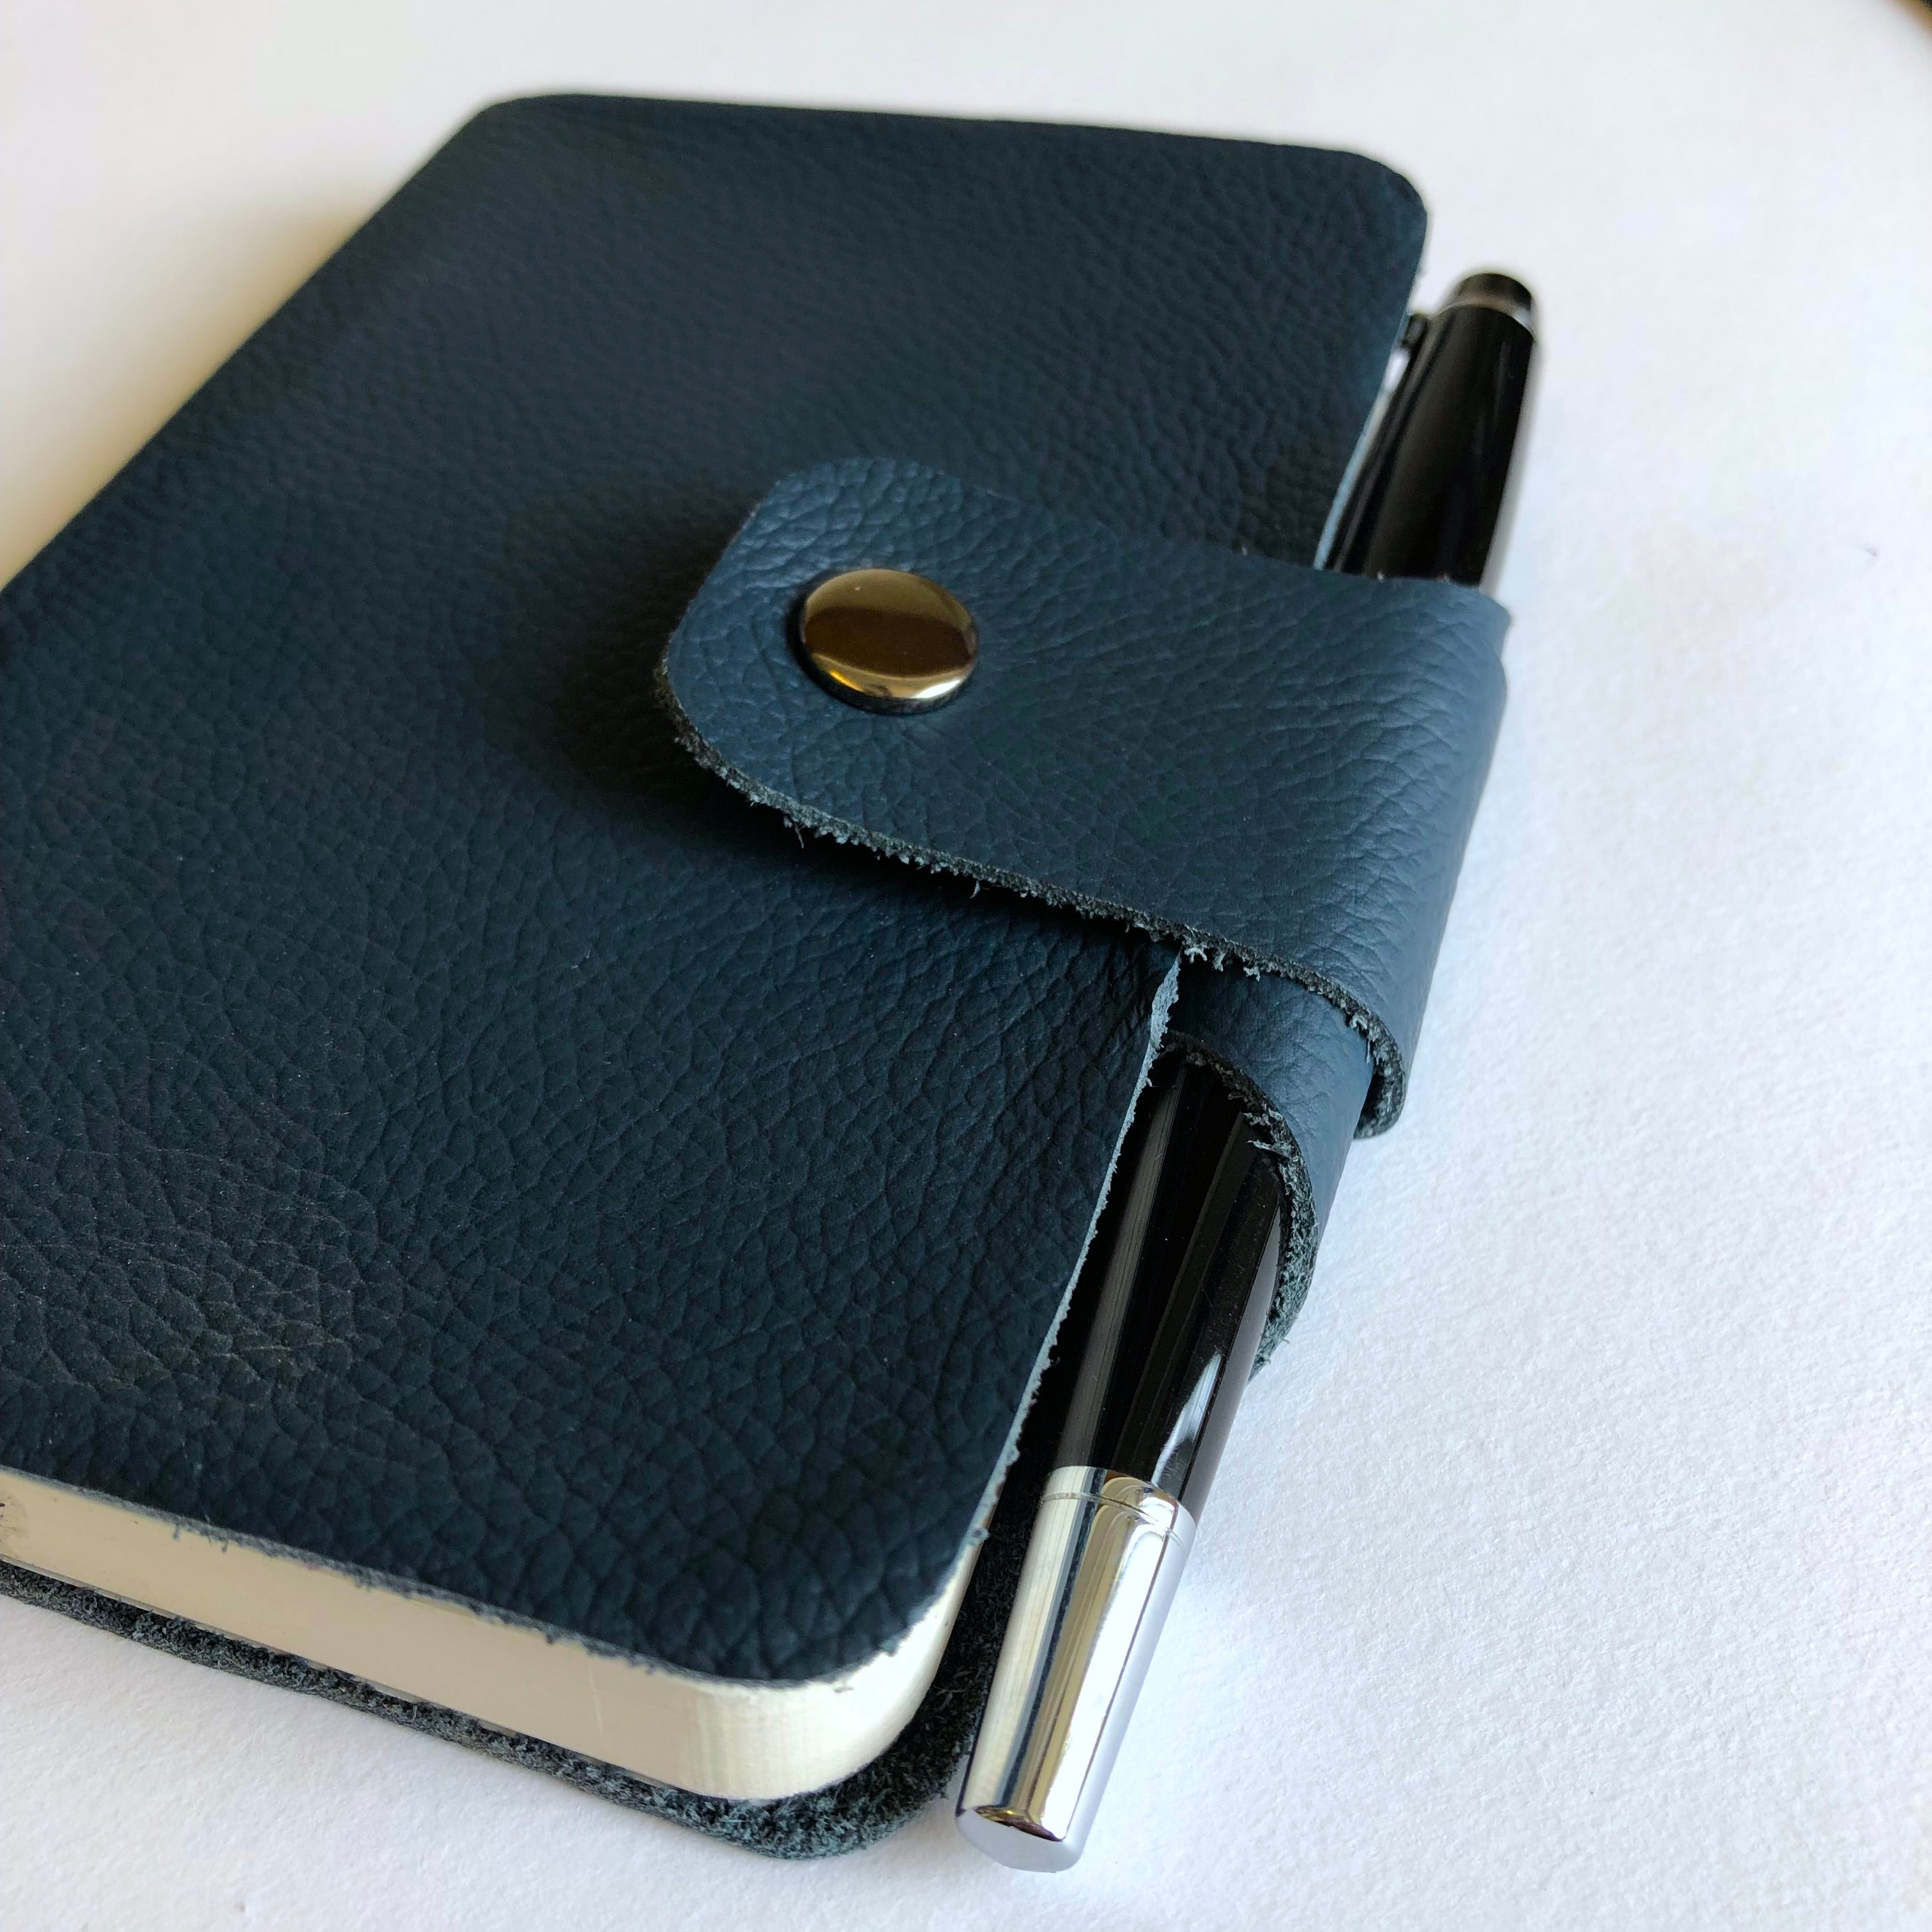 Rutland Luxury Leather Diary with Pen